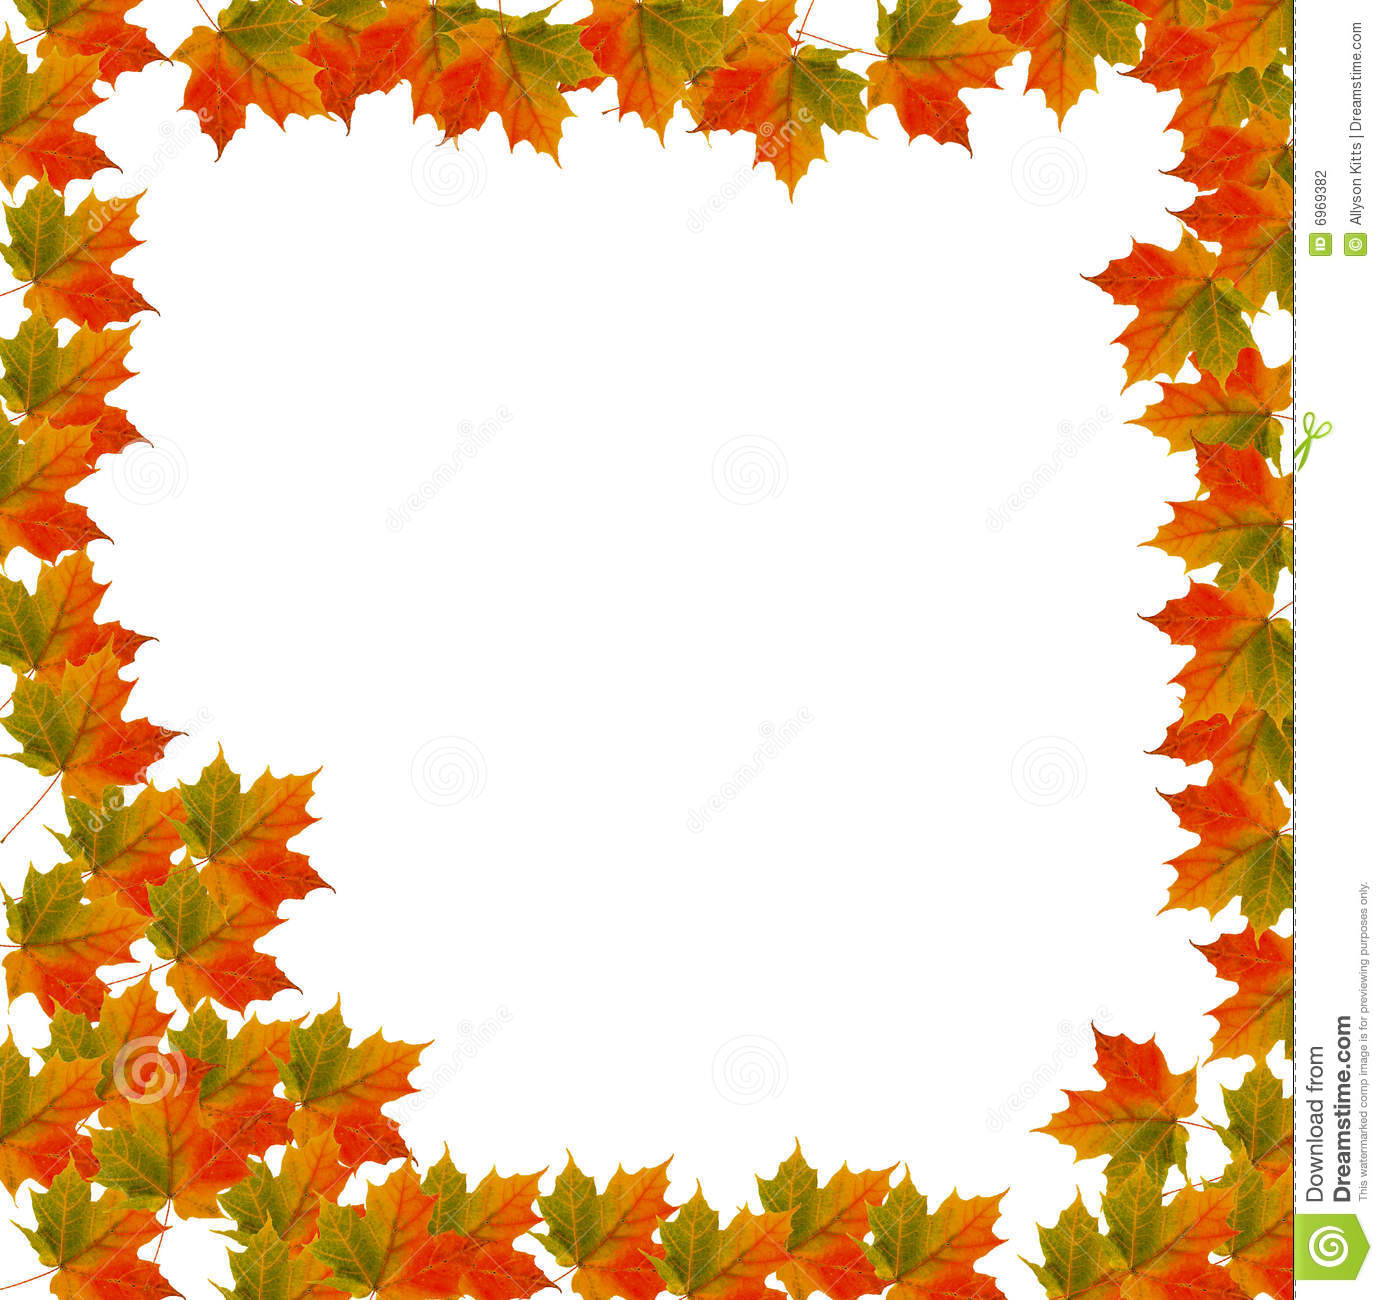 Fall Leaves Clip Art Wallpaper Border Leaf Background For Autumn Stock Photography